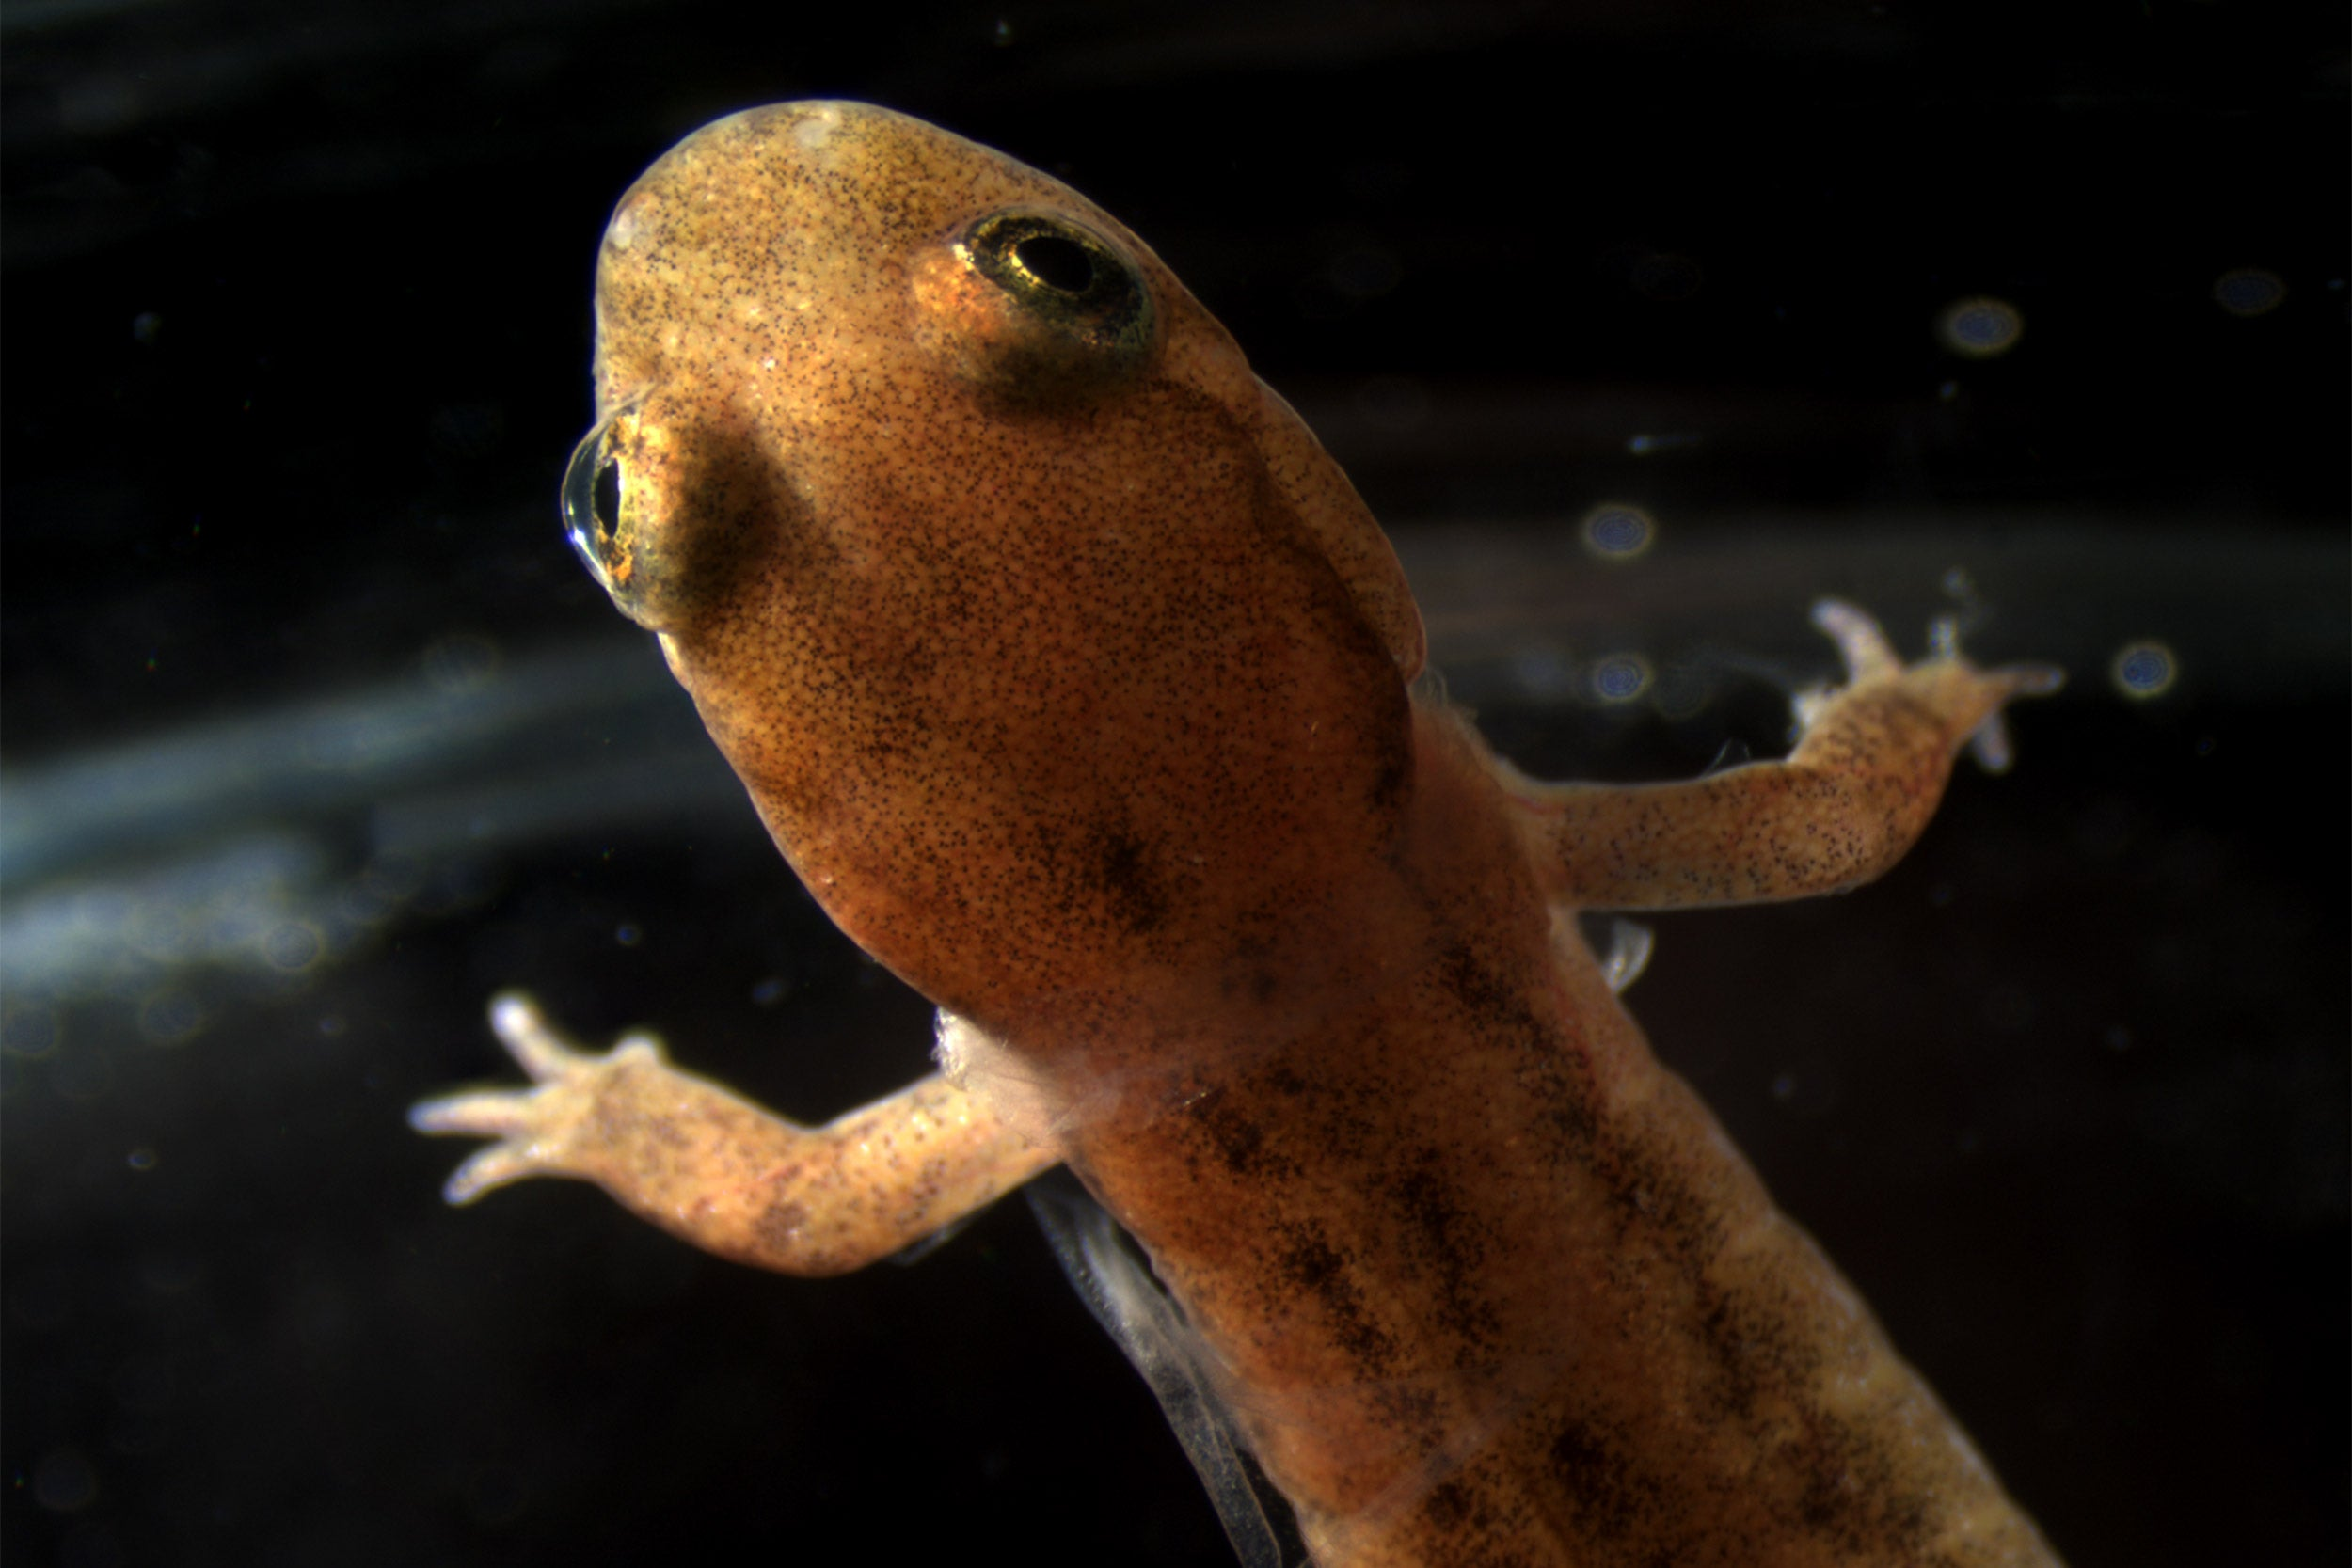 Desmognathus fuscus. That is one of the lungless salamanders featured in the study